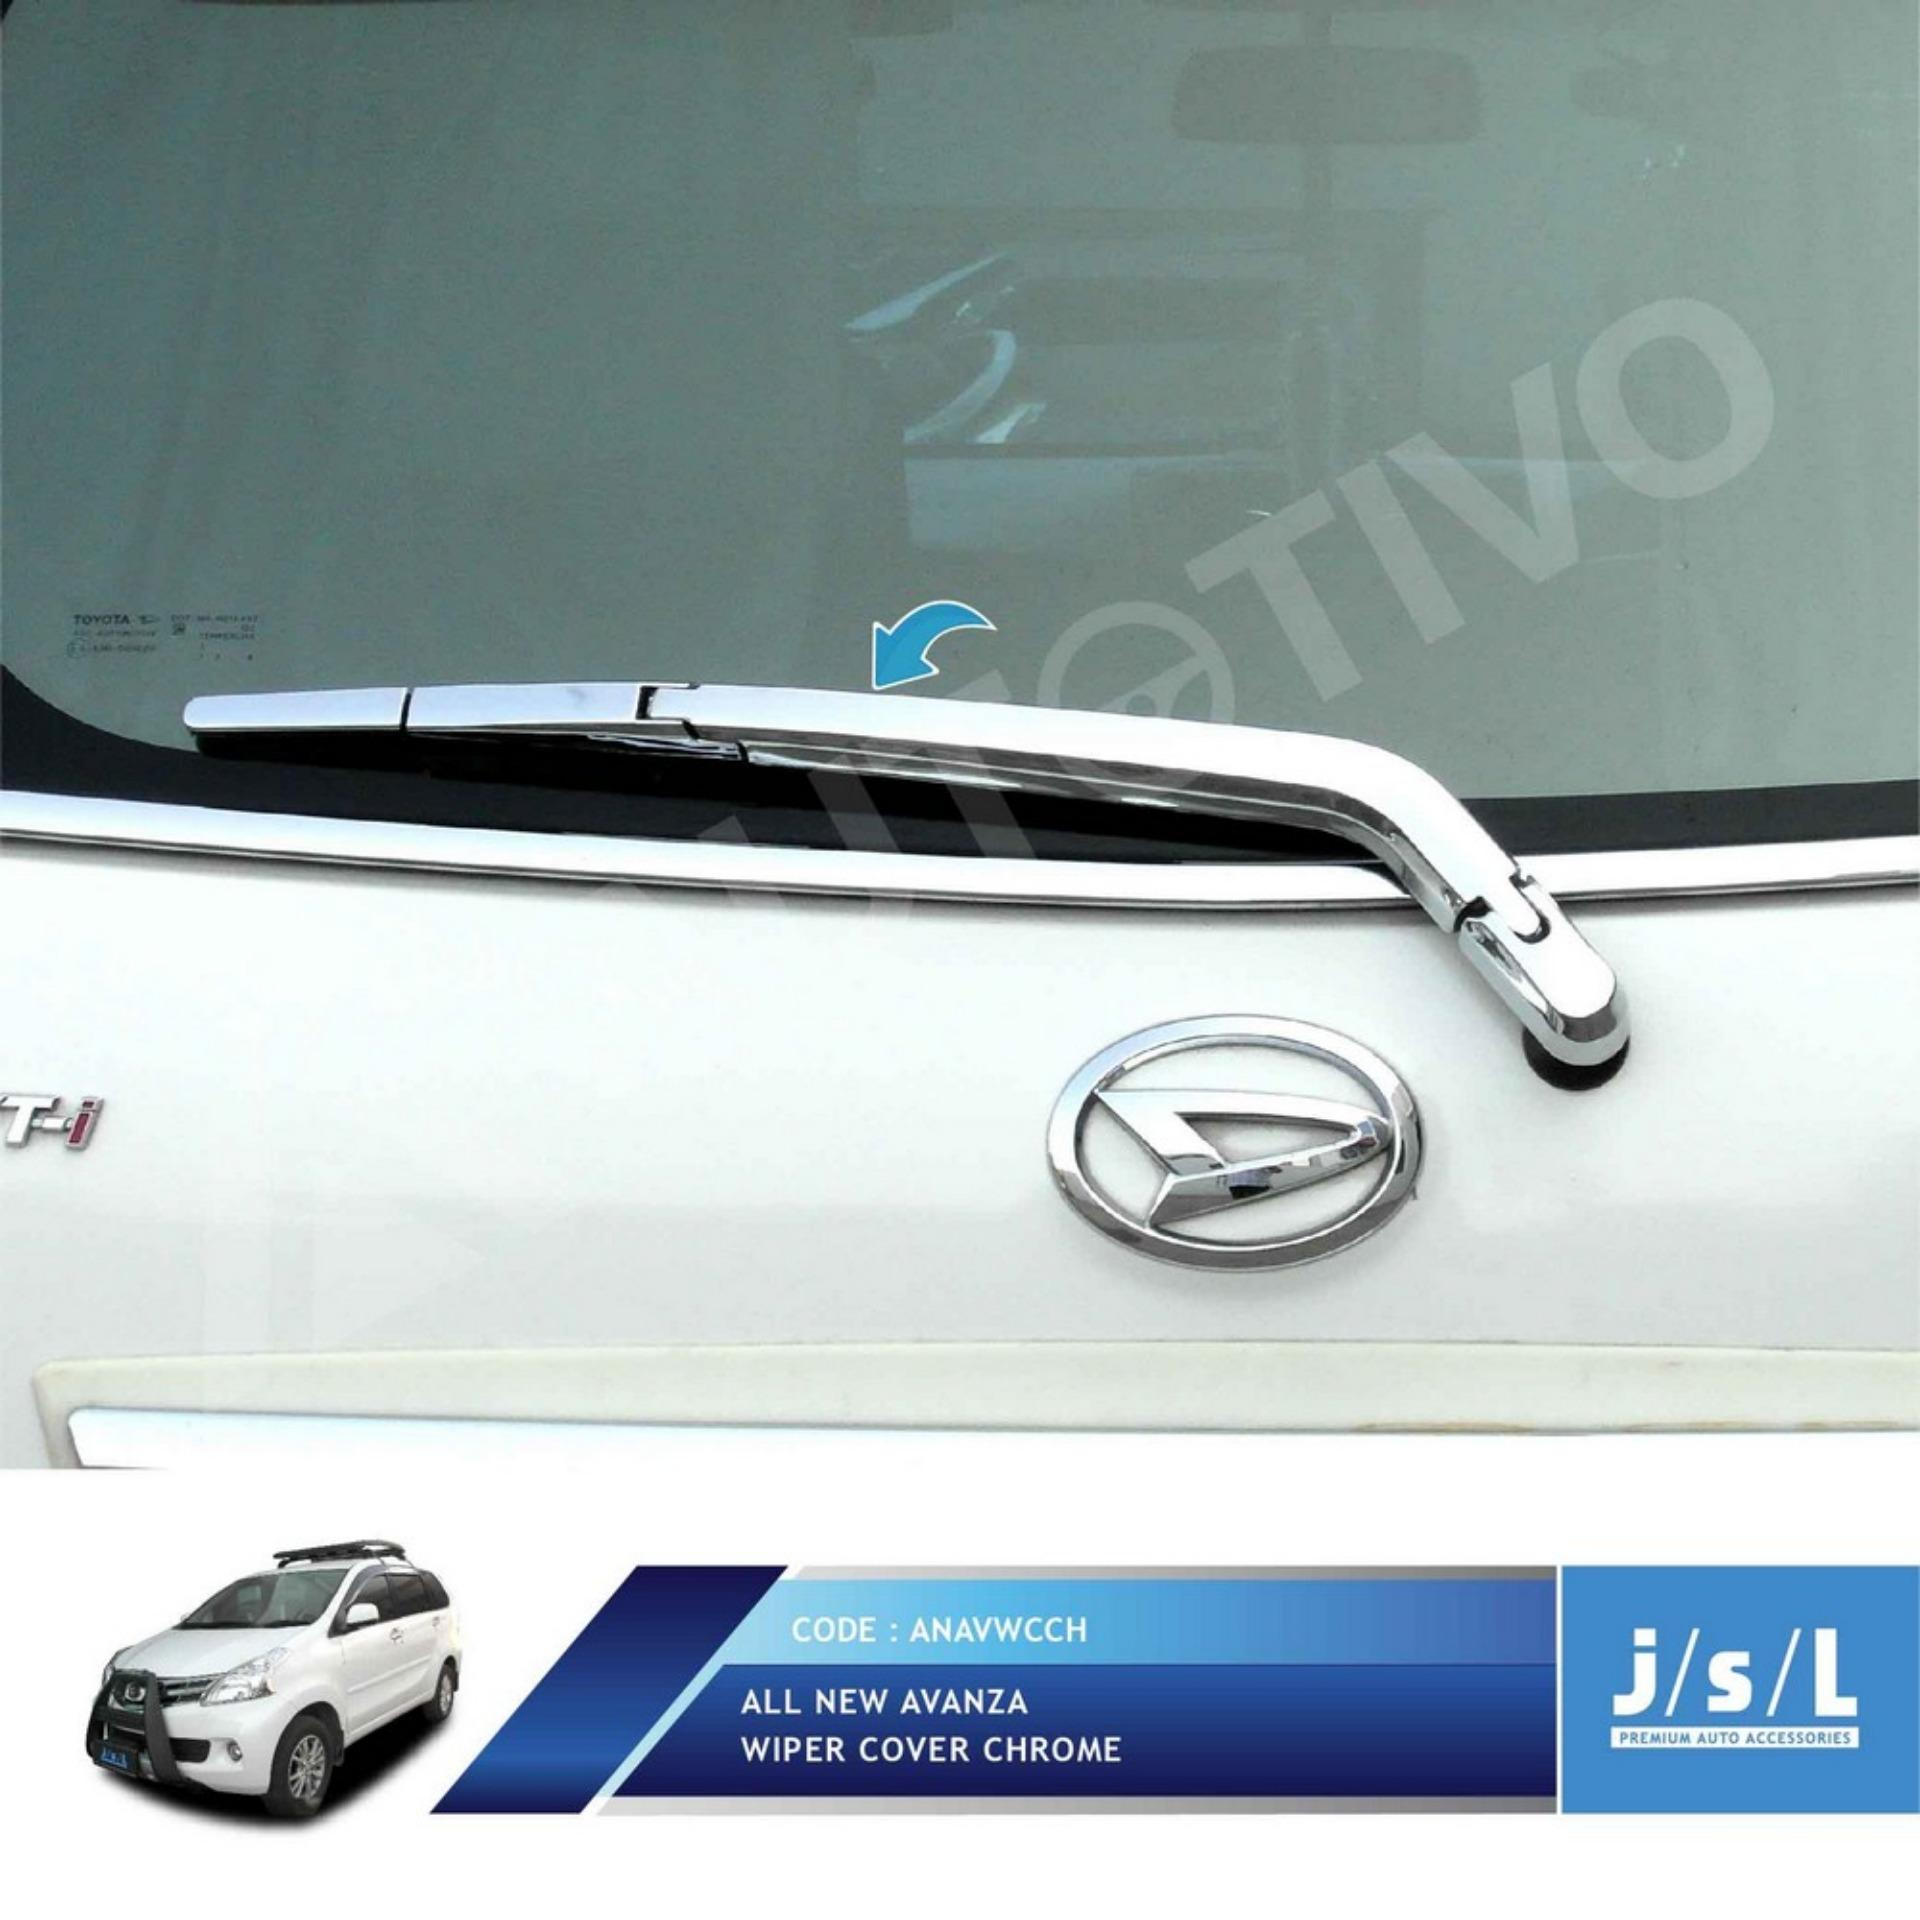 wiper grand new avanza brand toyota alphard for sale features 2008 2011 cover chrome jsl dan harga all aksesoris mobil